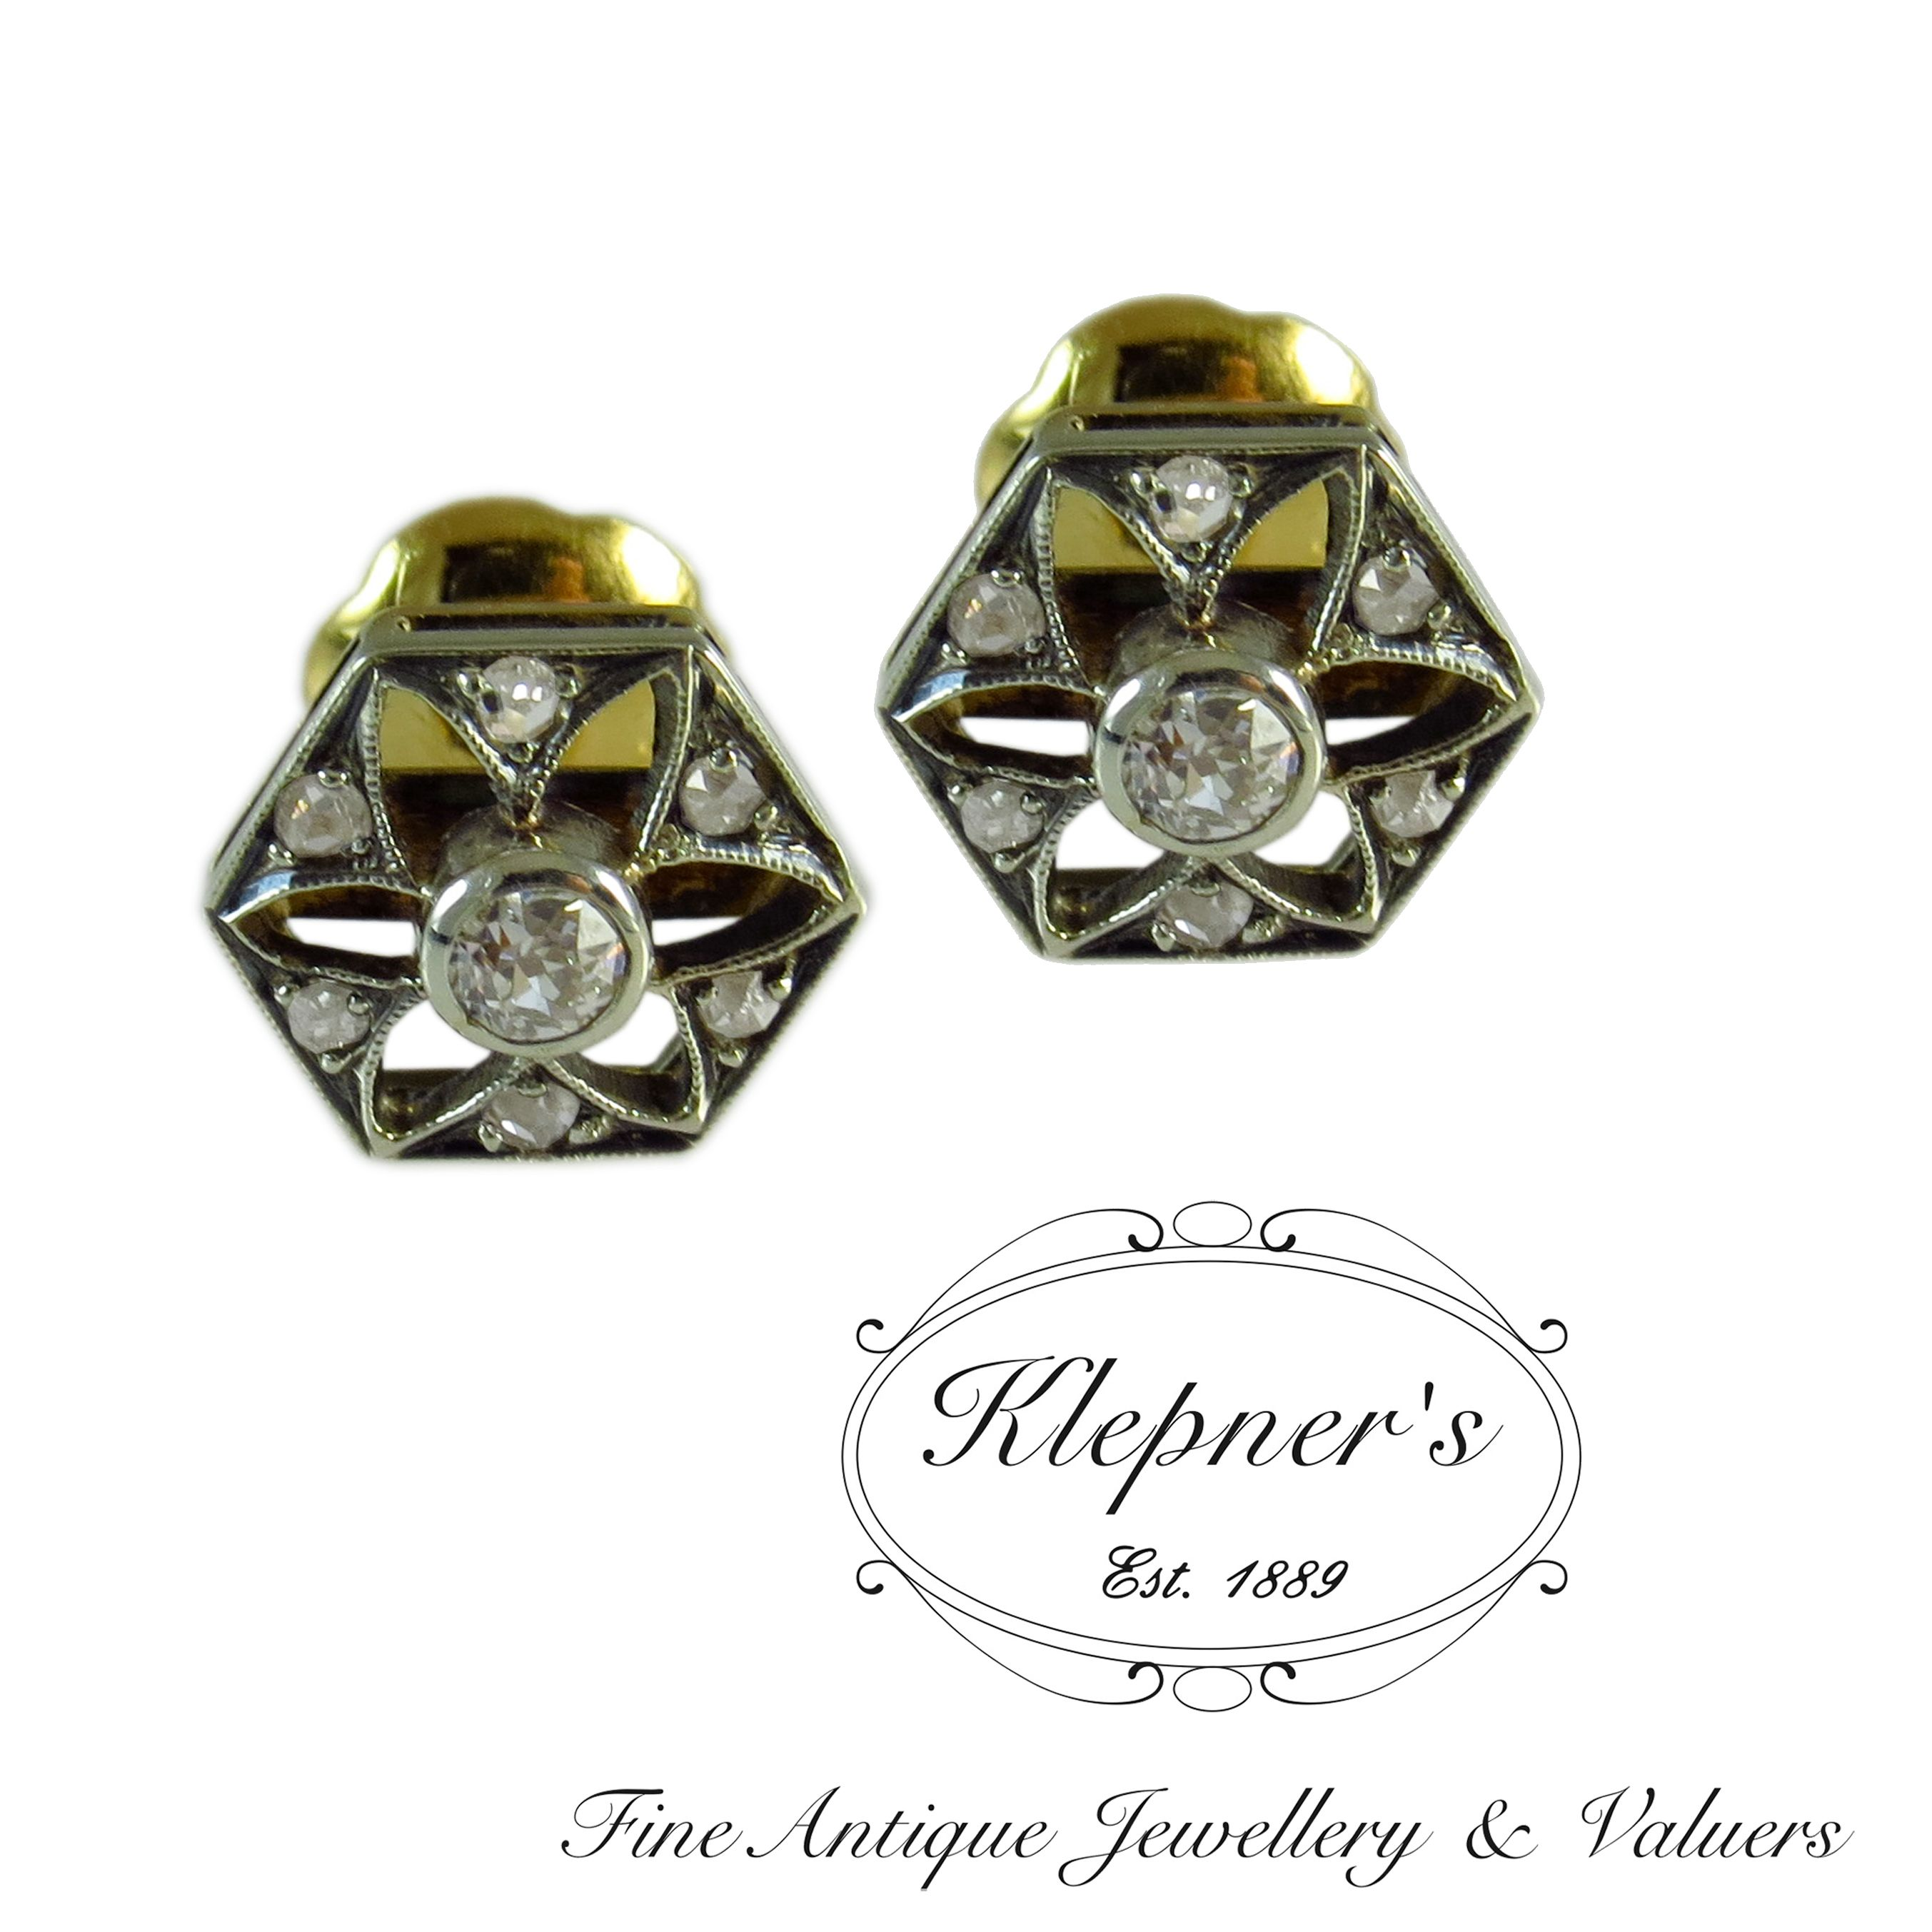 white thomas diamond in jewelers img vintage gold antique timeless stud earrings martini round